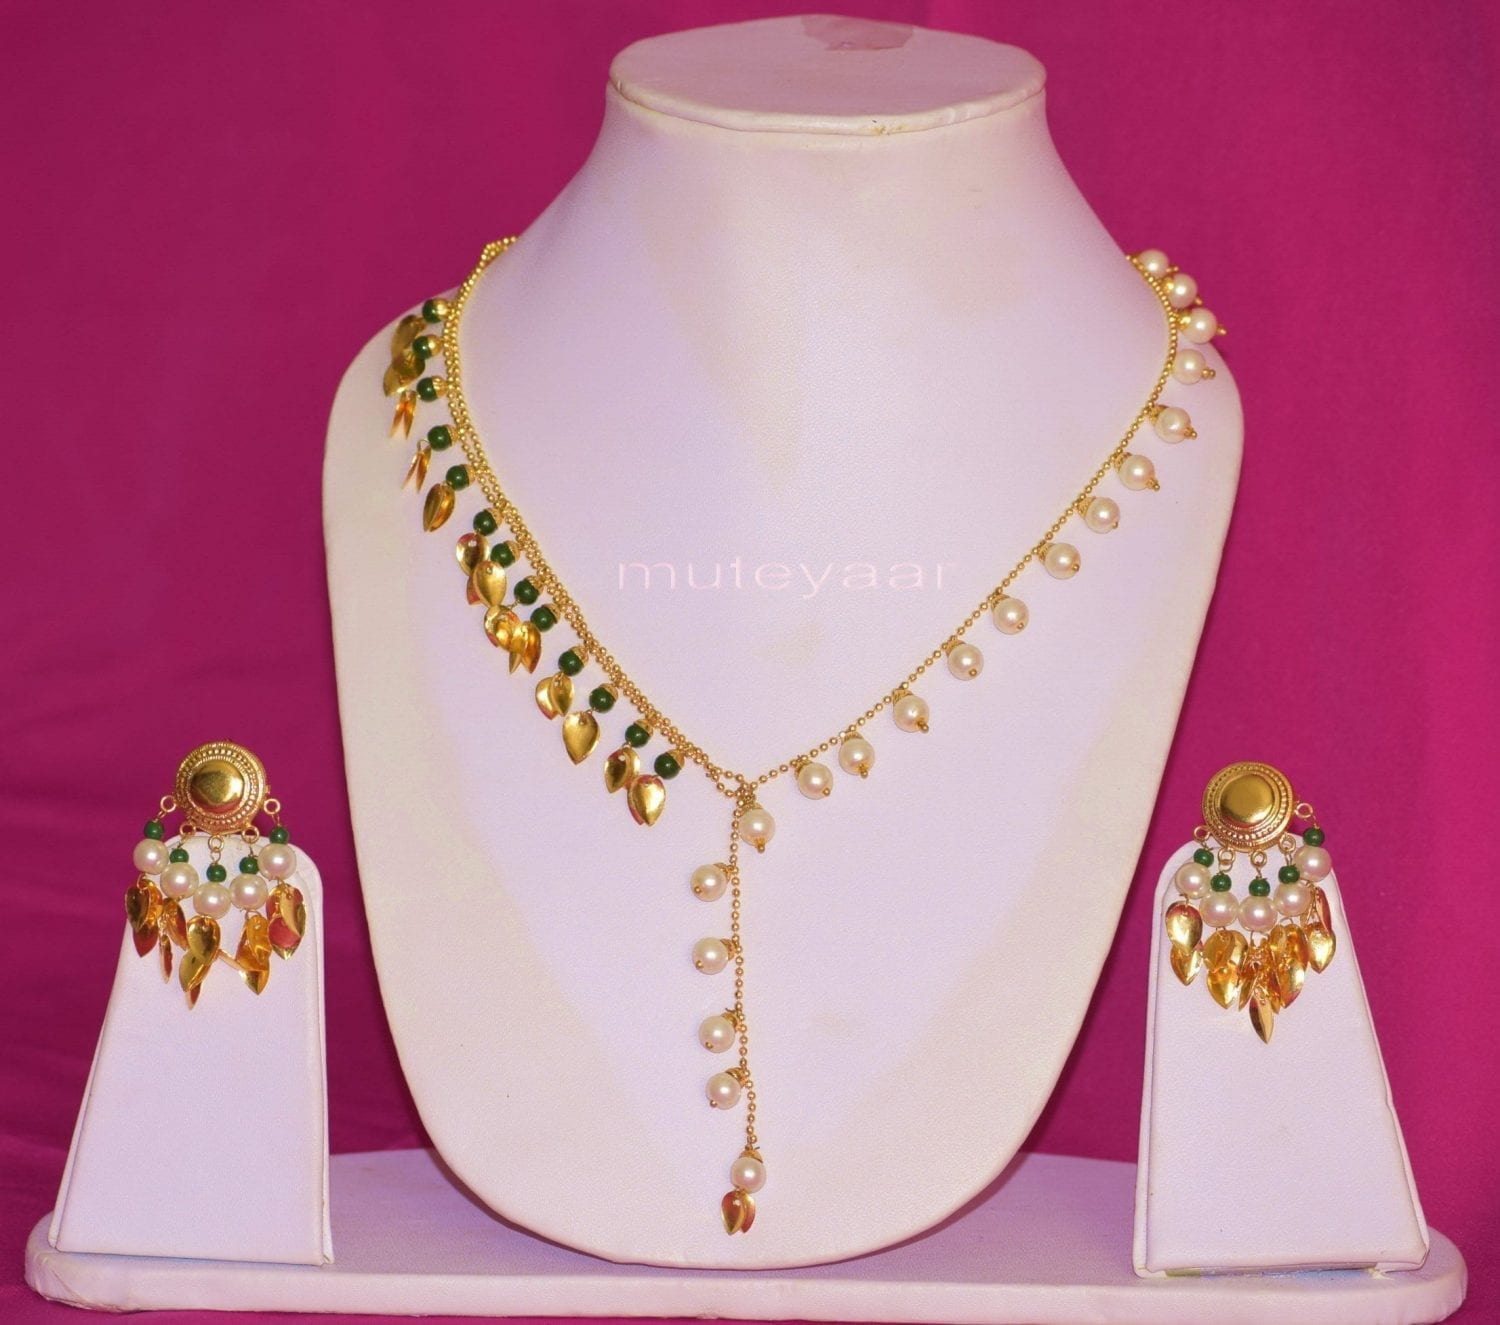 24 Ct. Gold Plated Traditional Punjabi chain set with two colour Moti Beads J0211 4